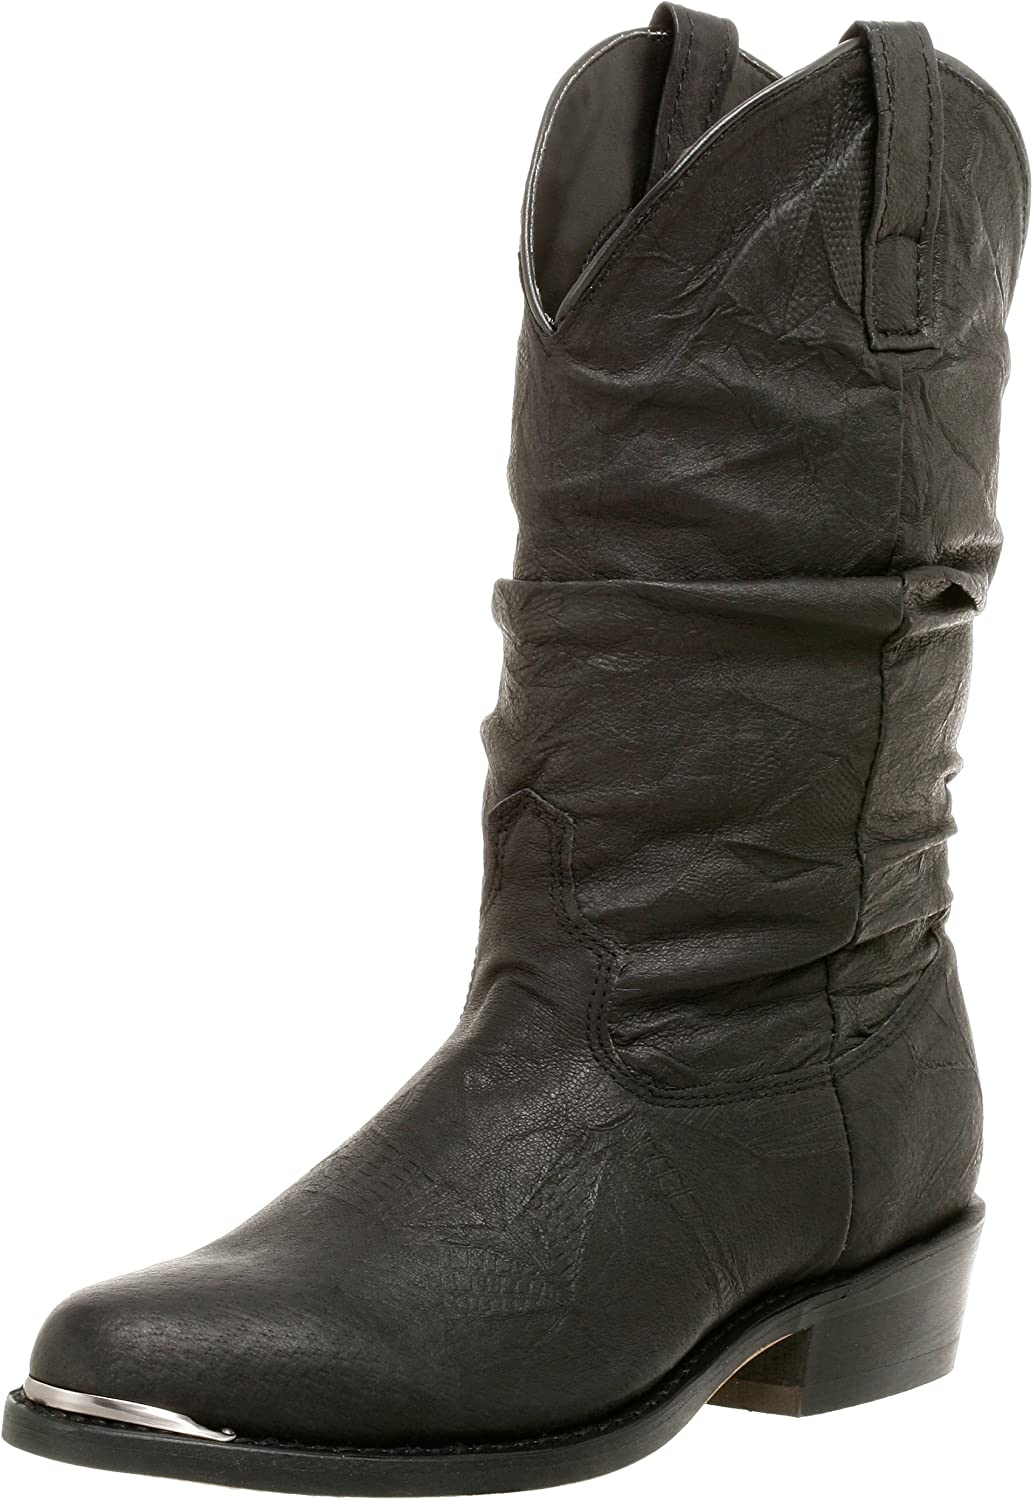 Dingo Mens Amsterdam In stock Leather Pointed Purchase Toe - Boots Western Cowboy